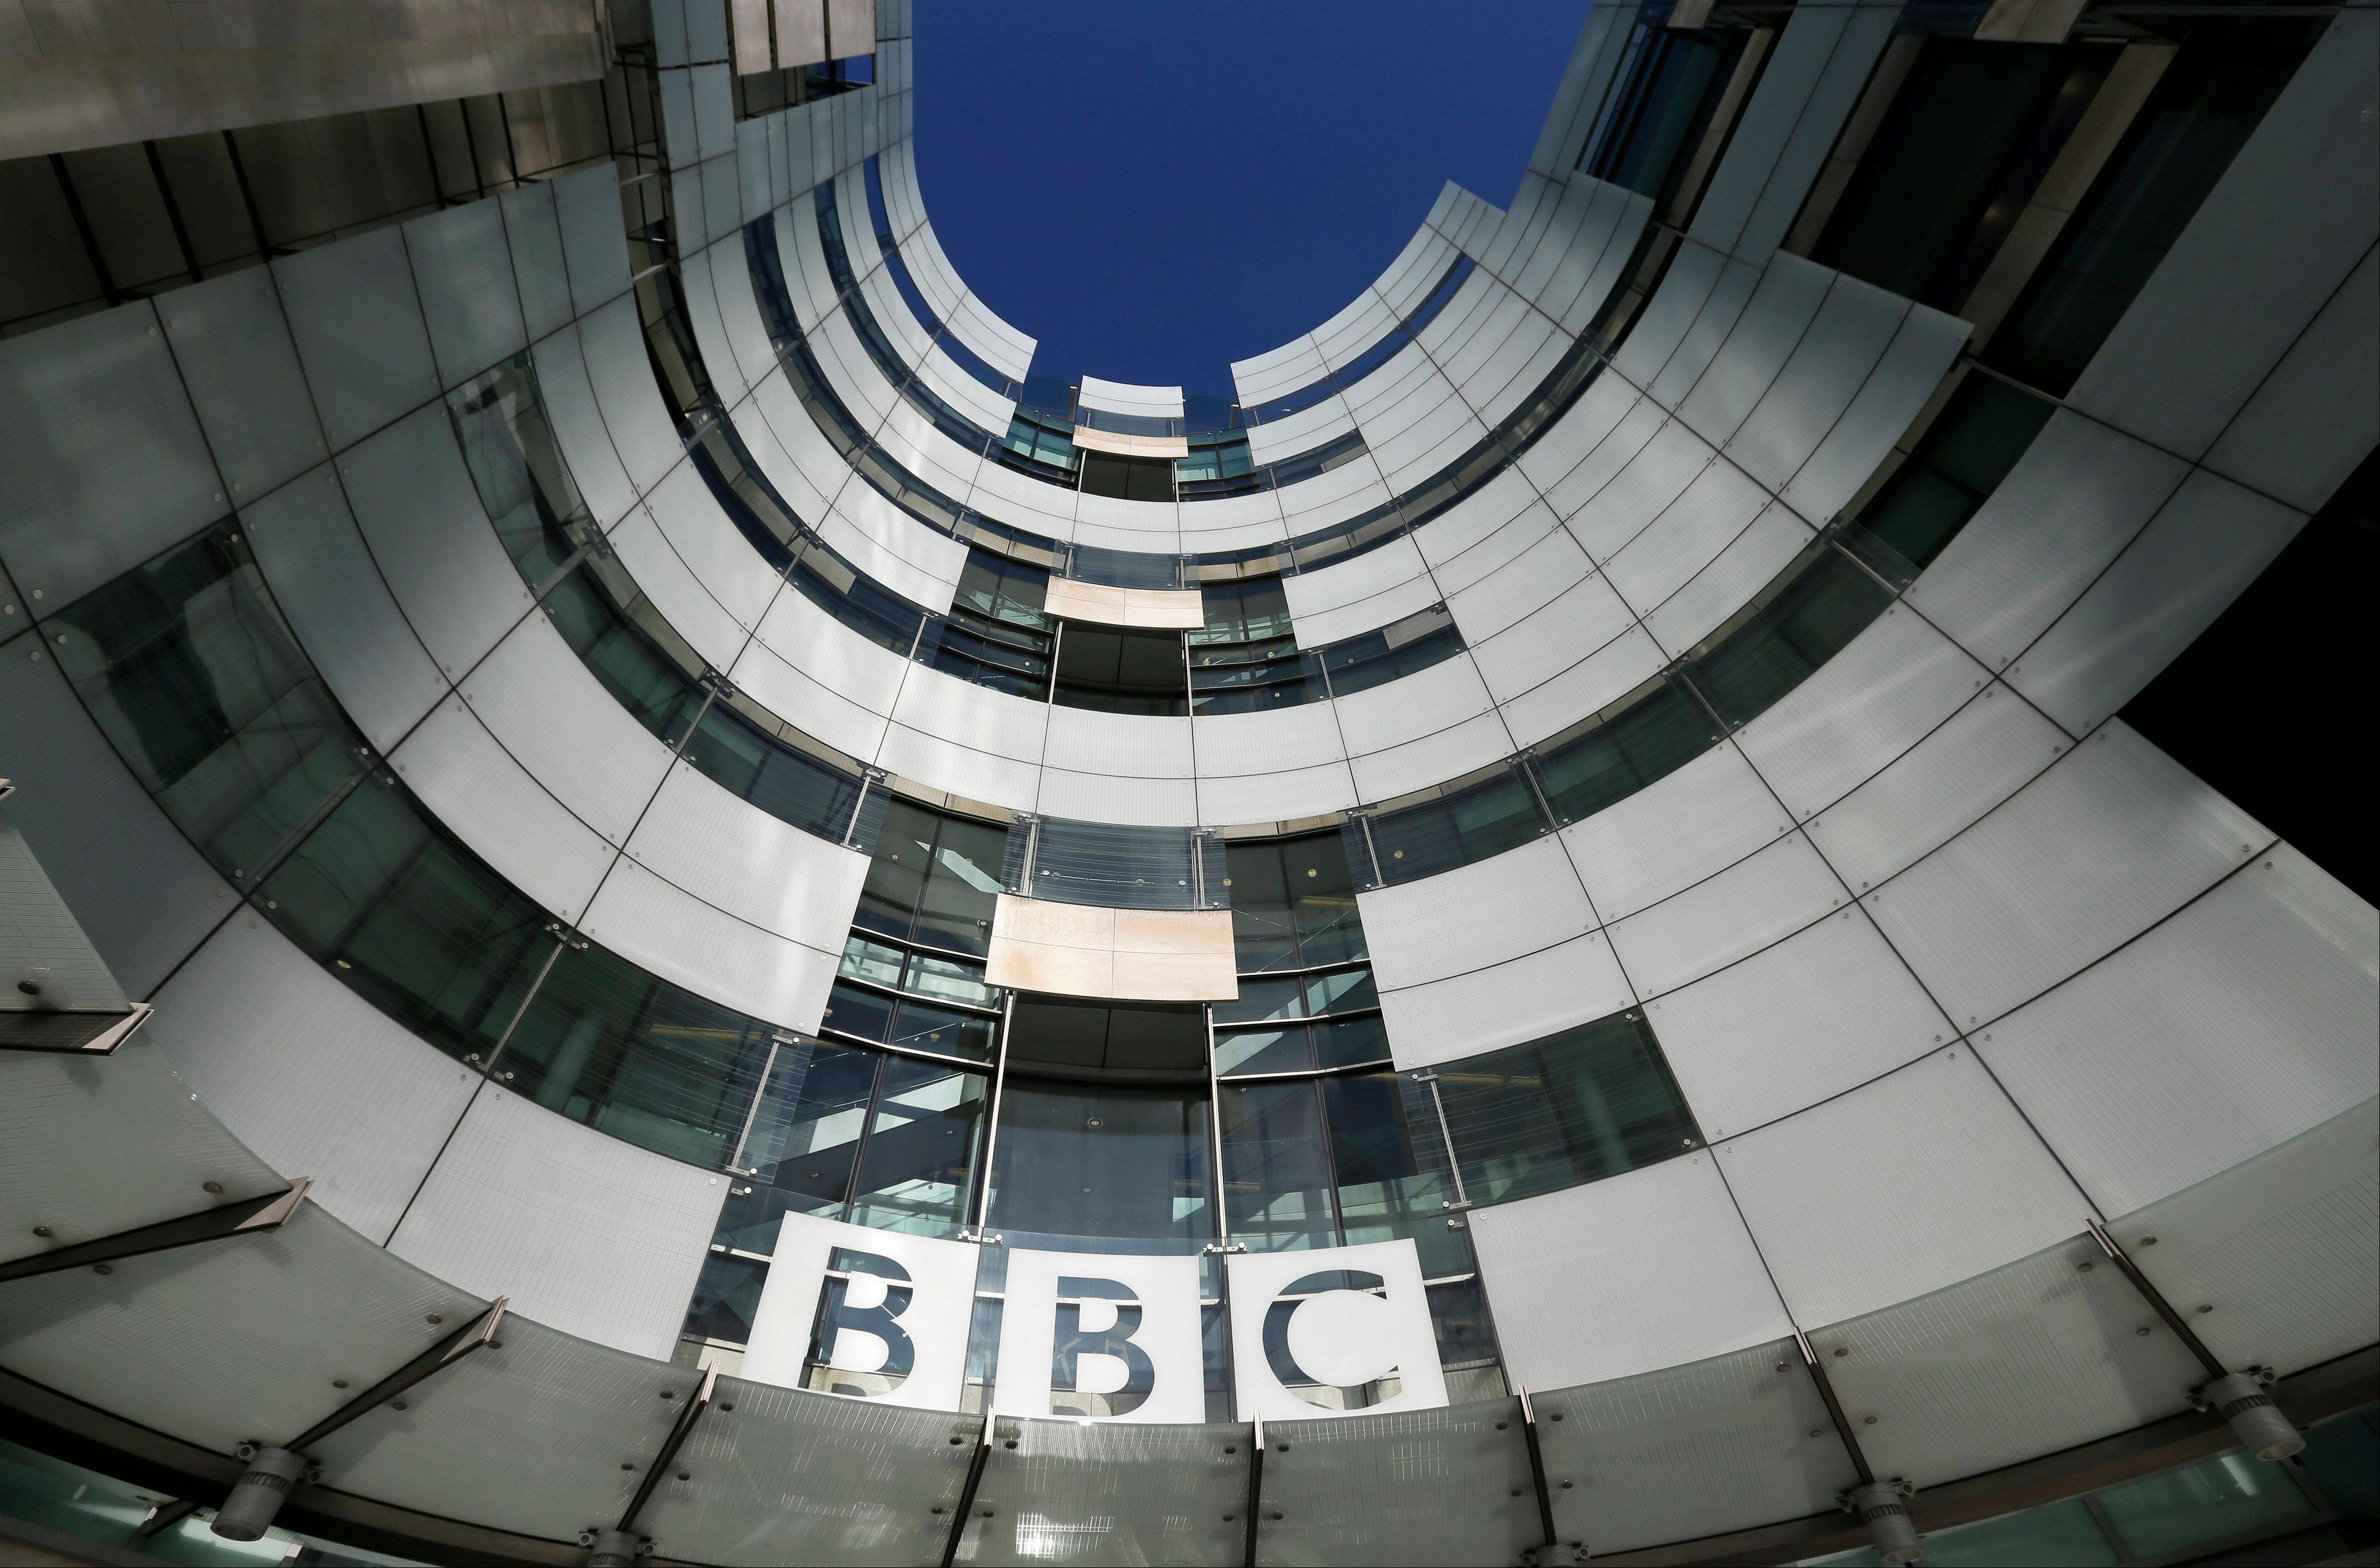 The head of the BBC's governing body said Sunday the broadcaster needs a radical overhaul following the resignation of its chief executive in the wake of a scandal over a botched report on child sex-abuse allegations.